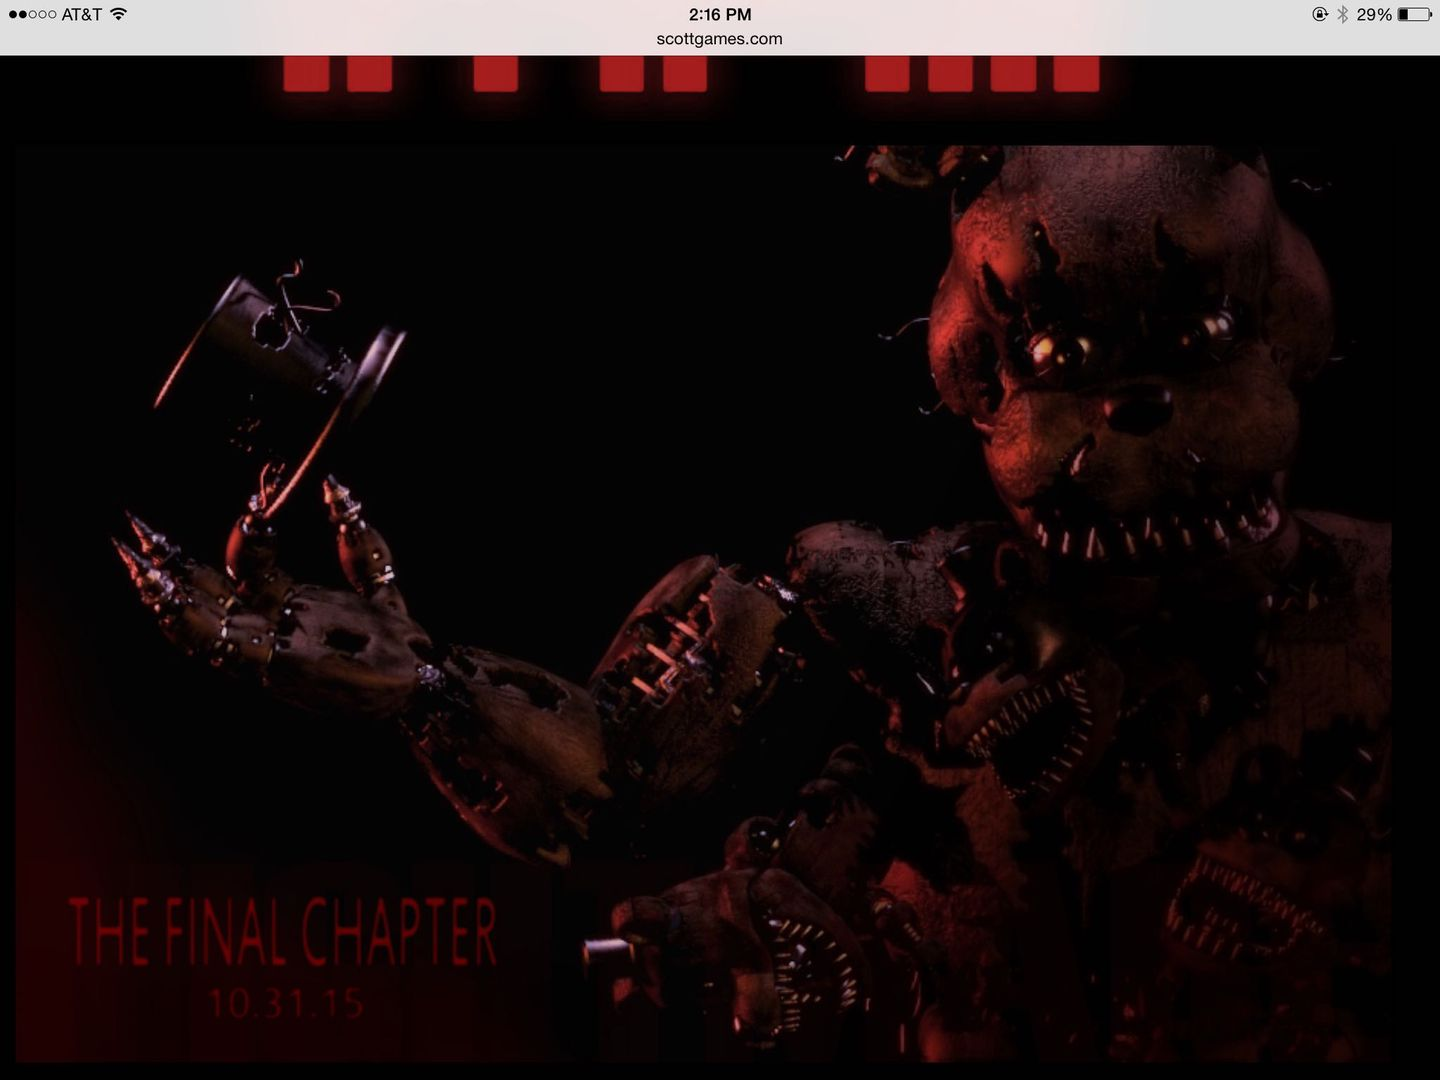 Fnaf facts and theories old quot nightmare quot phone guy stuffed inside